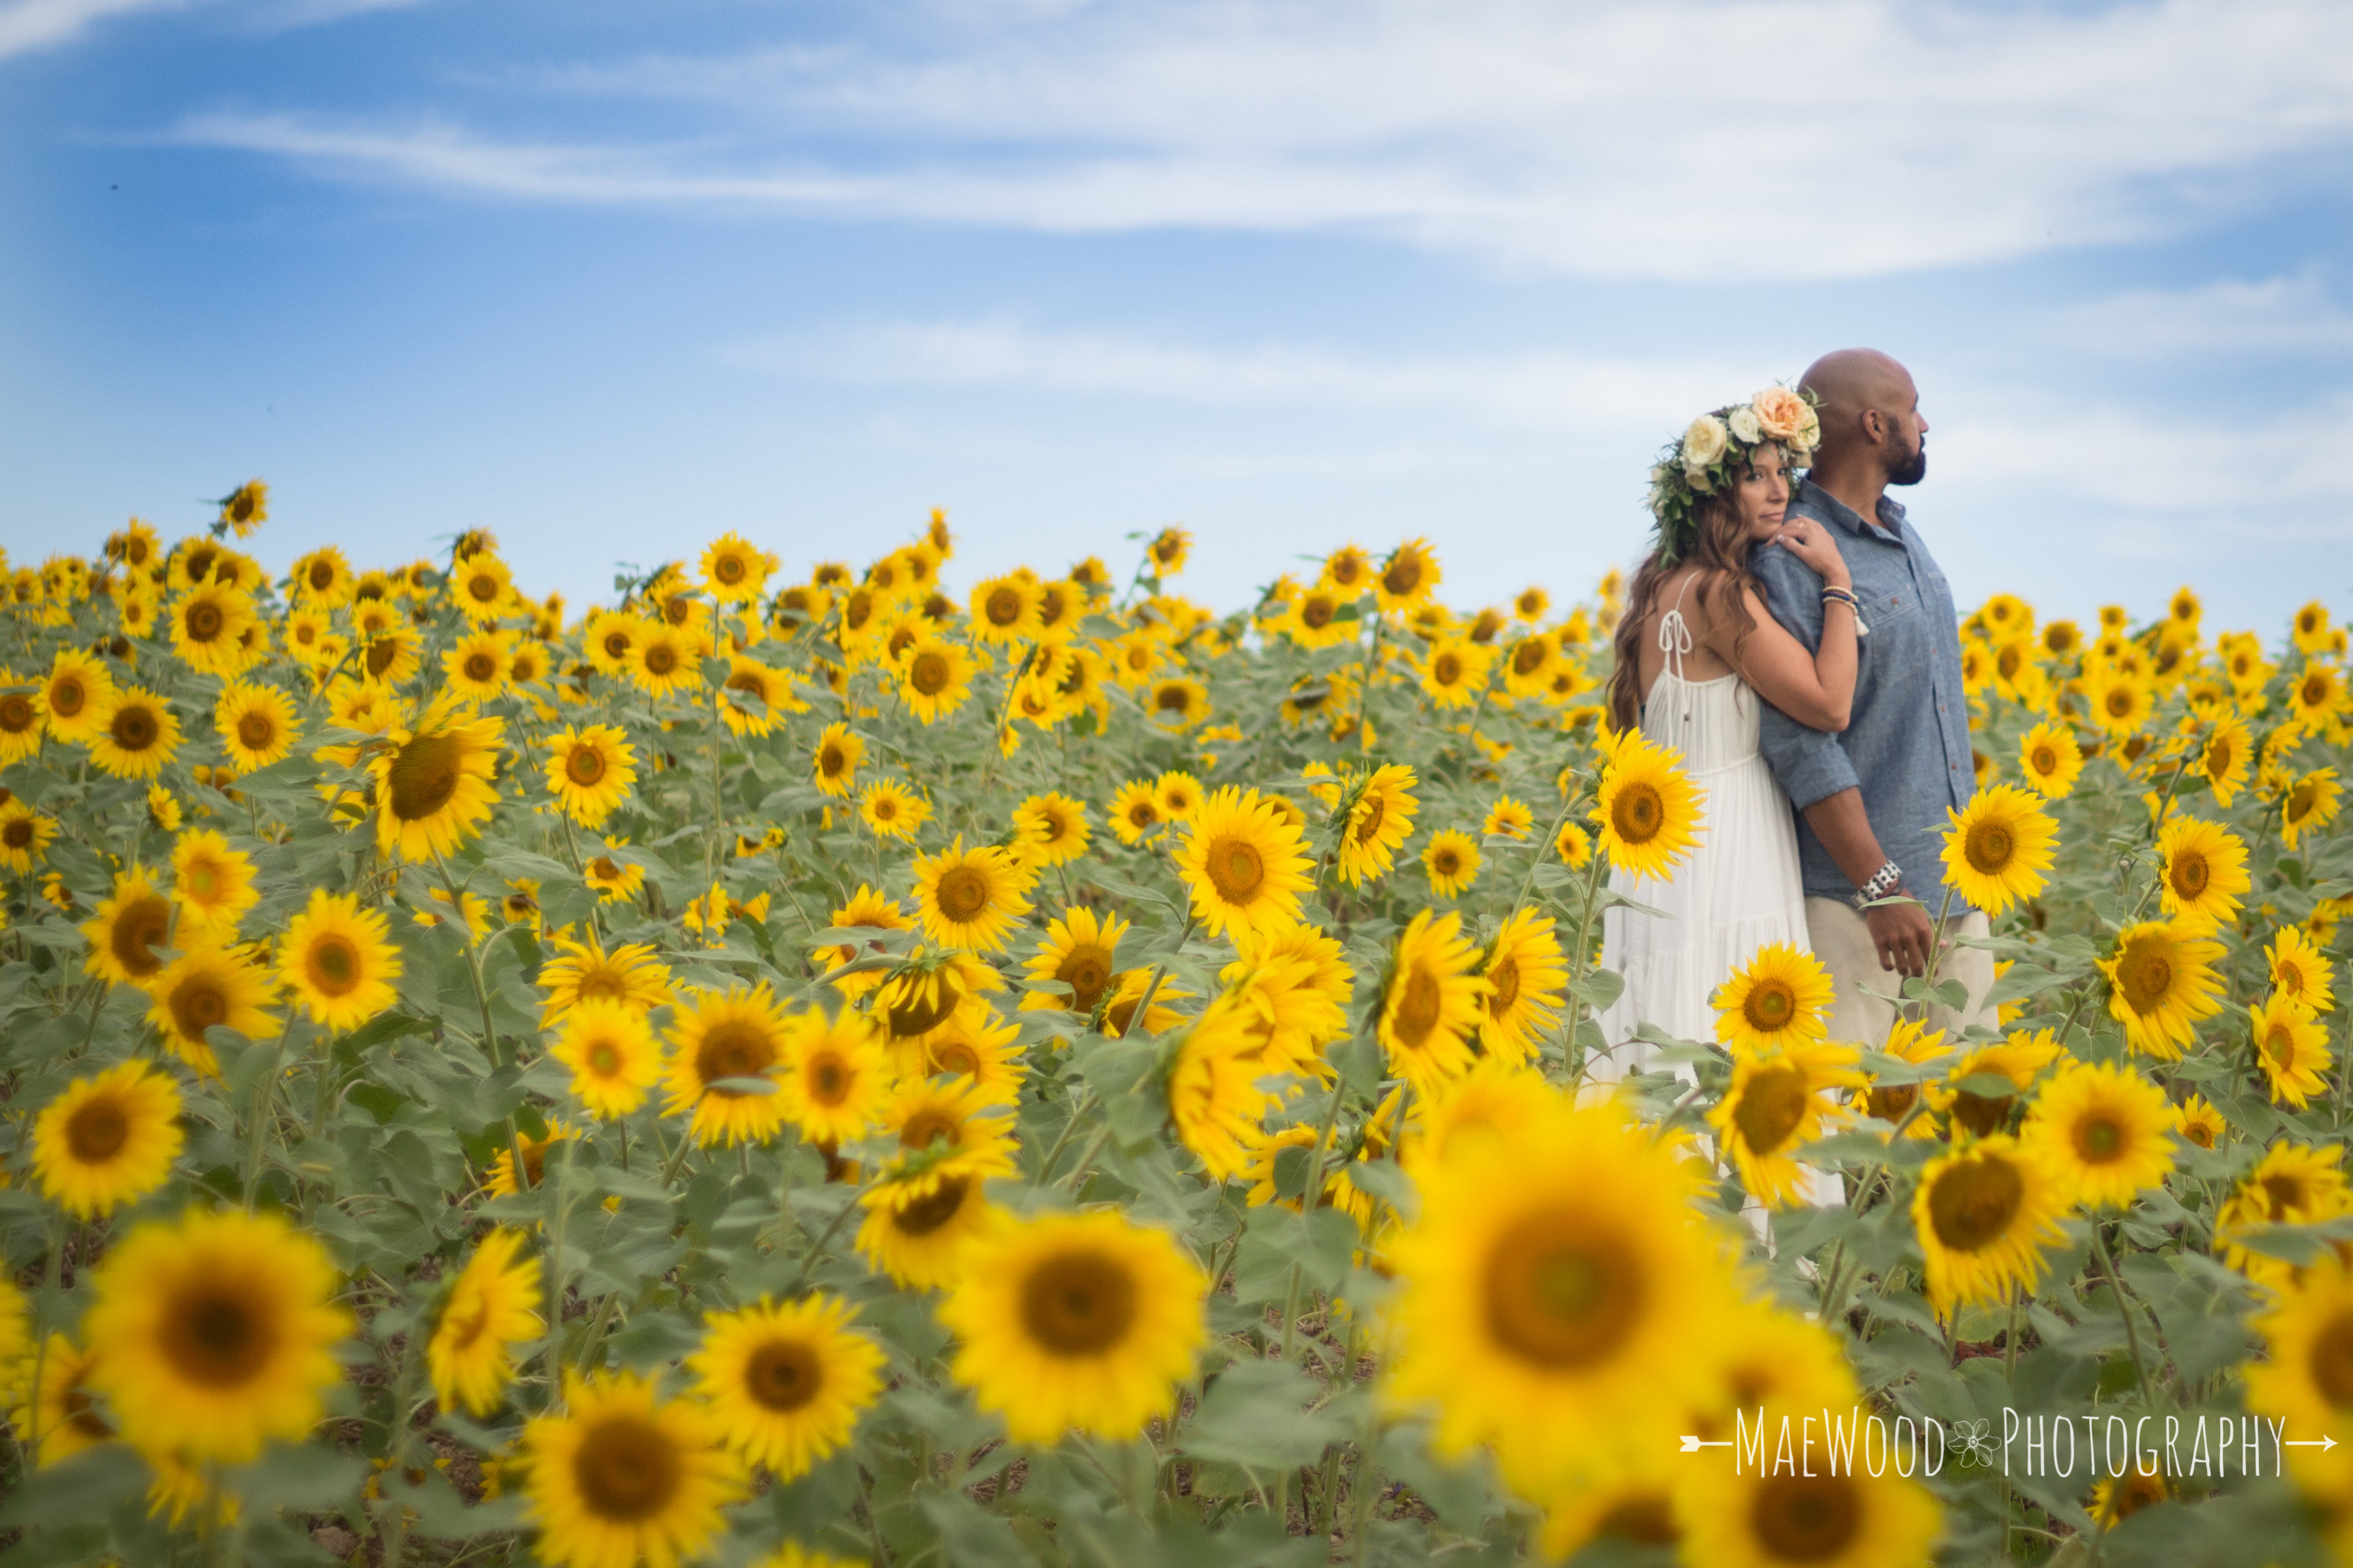 Husband and Wife in the Sunflower Field